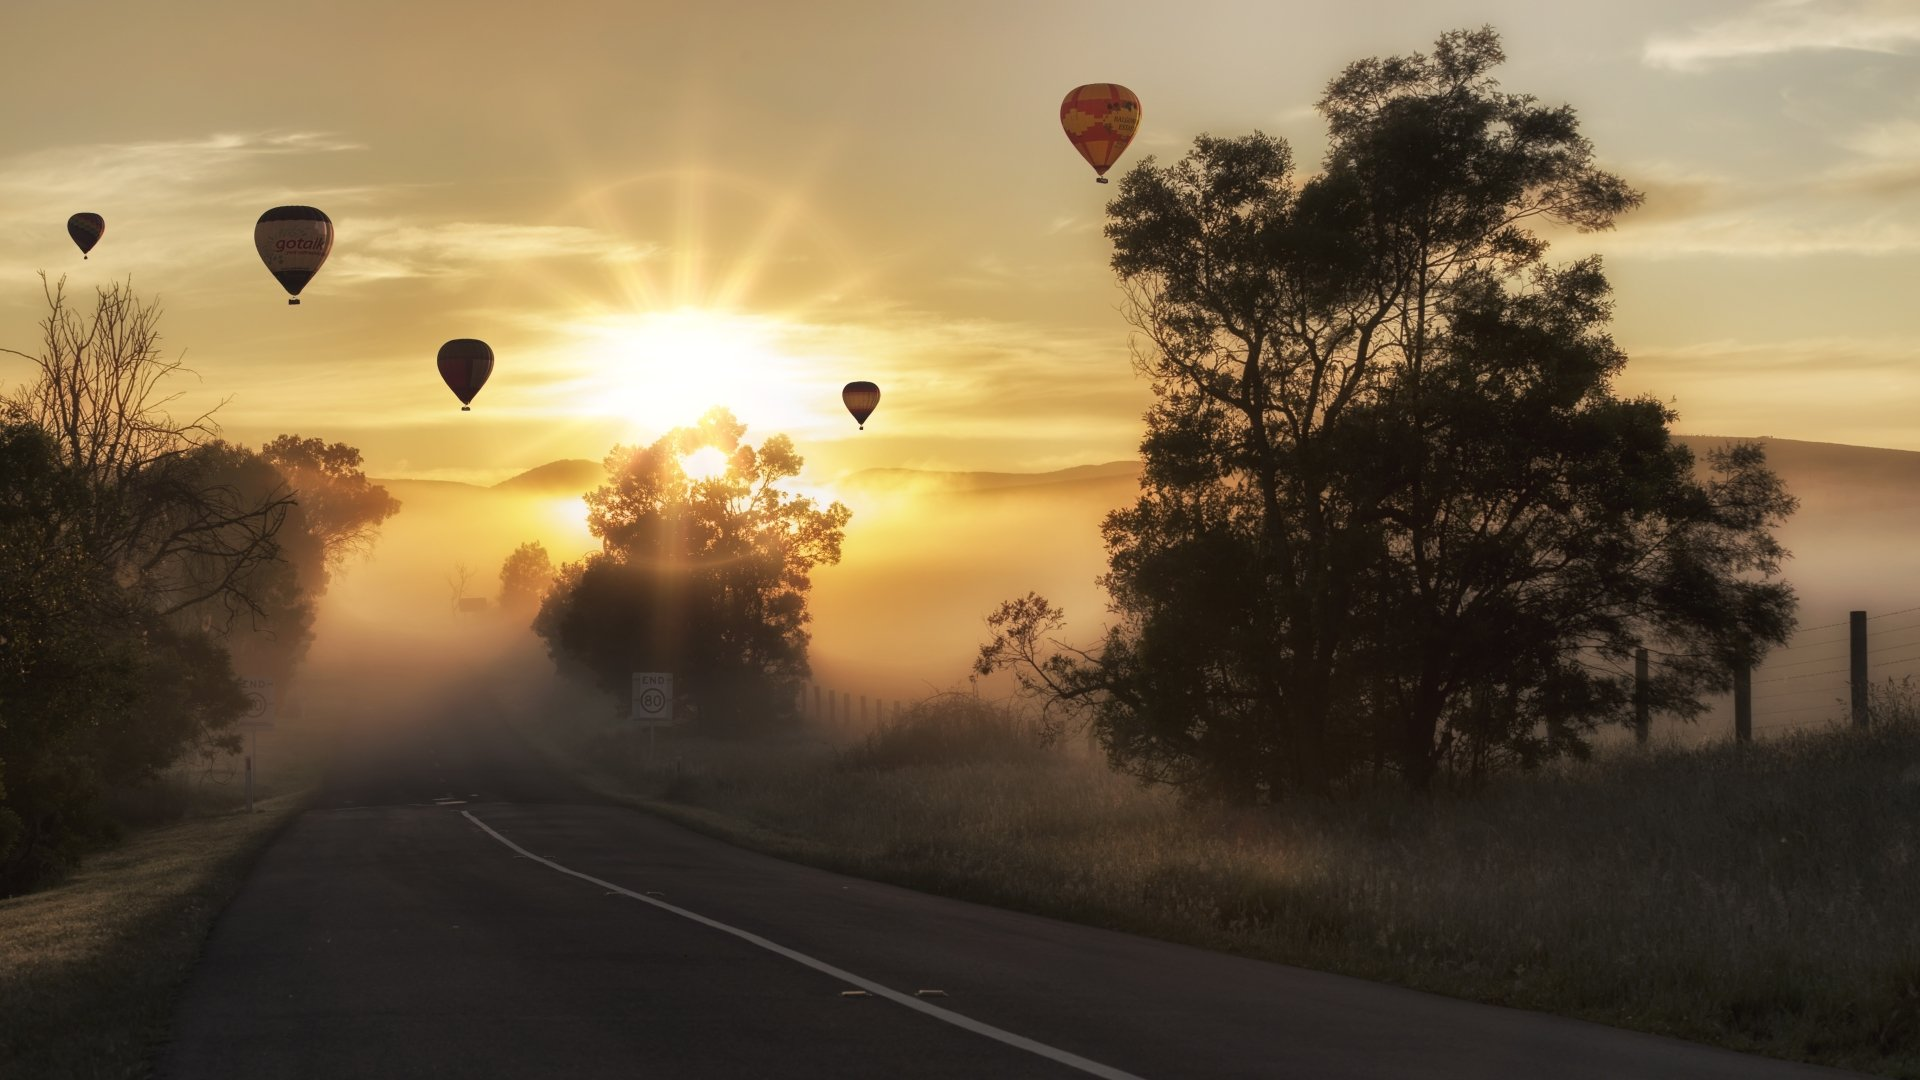 Photography - Sunrise  Hot Air Balloon Road Landscape Tree Sun Sunbeam Fog Vehicle Wallpaper